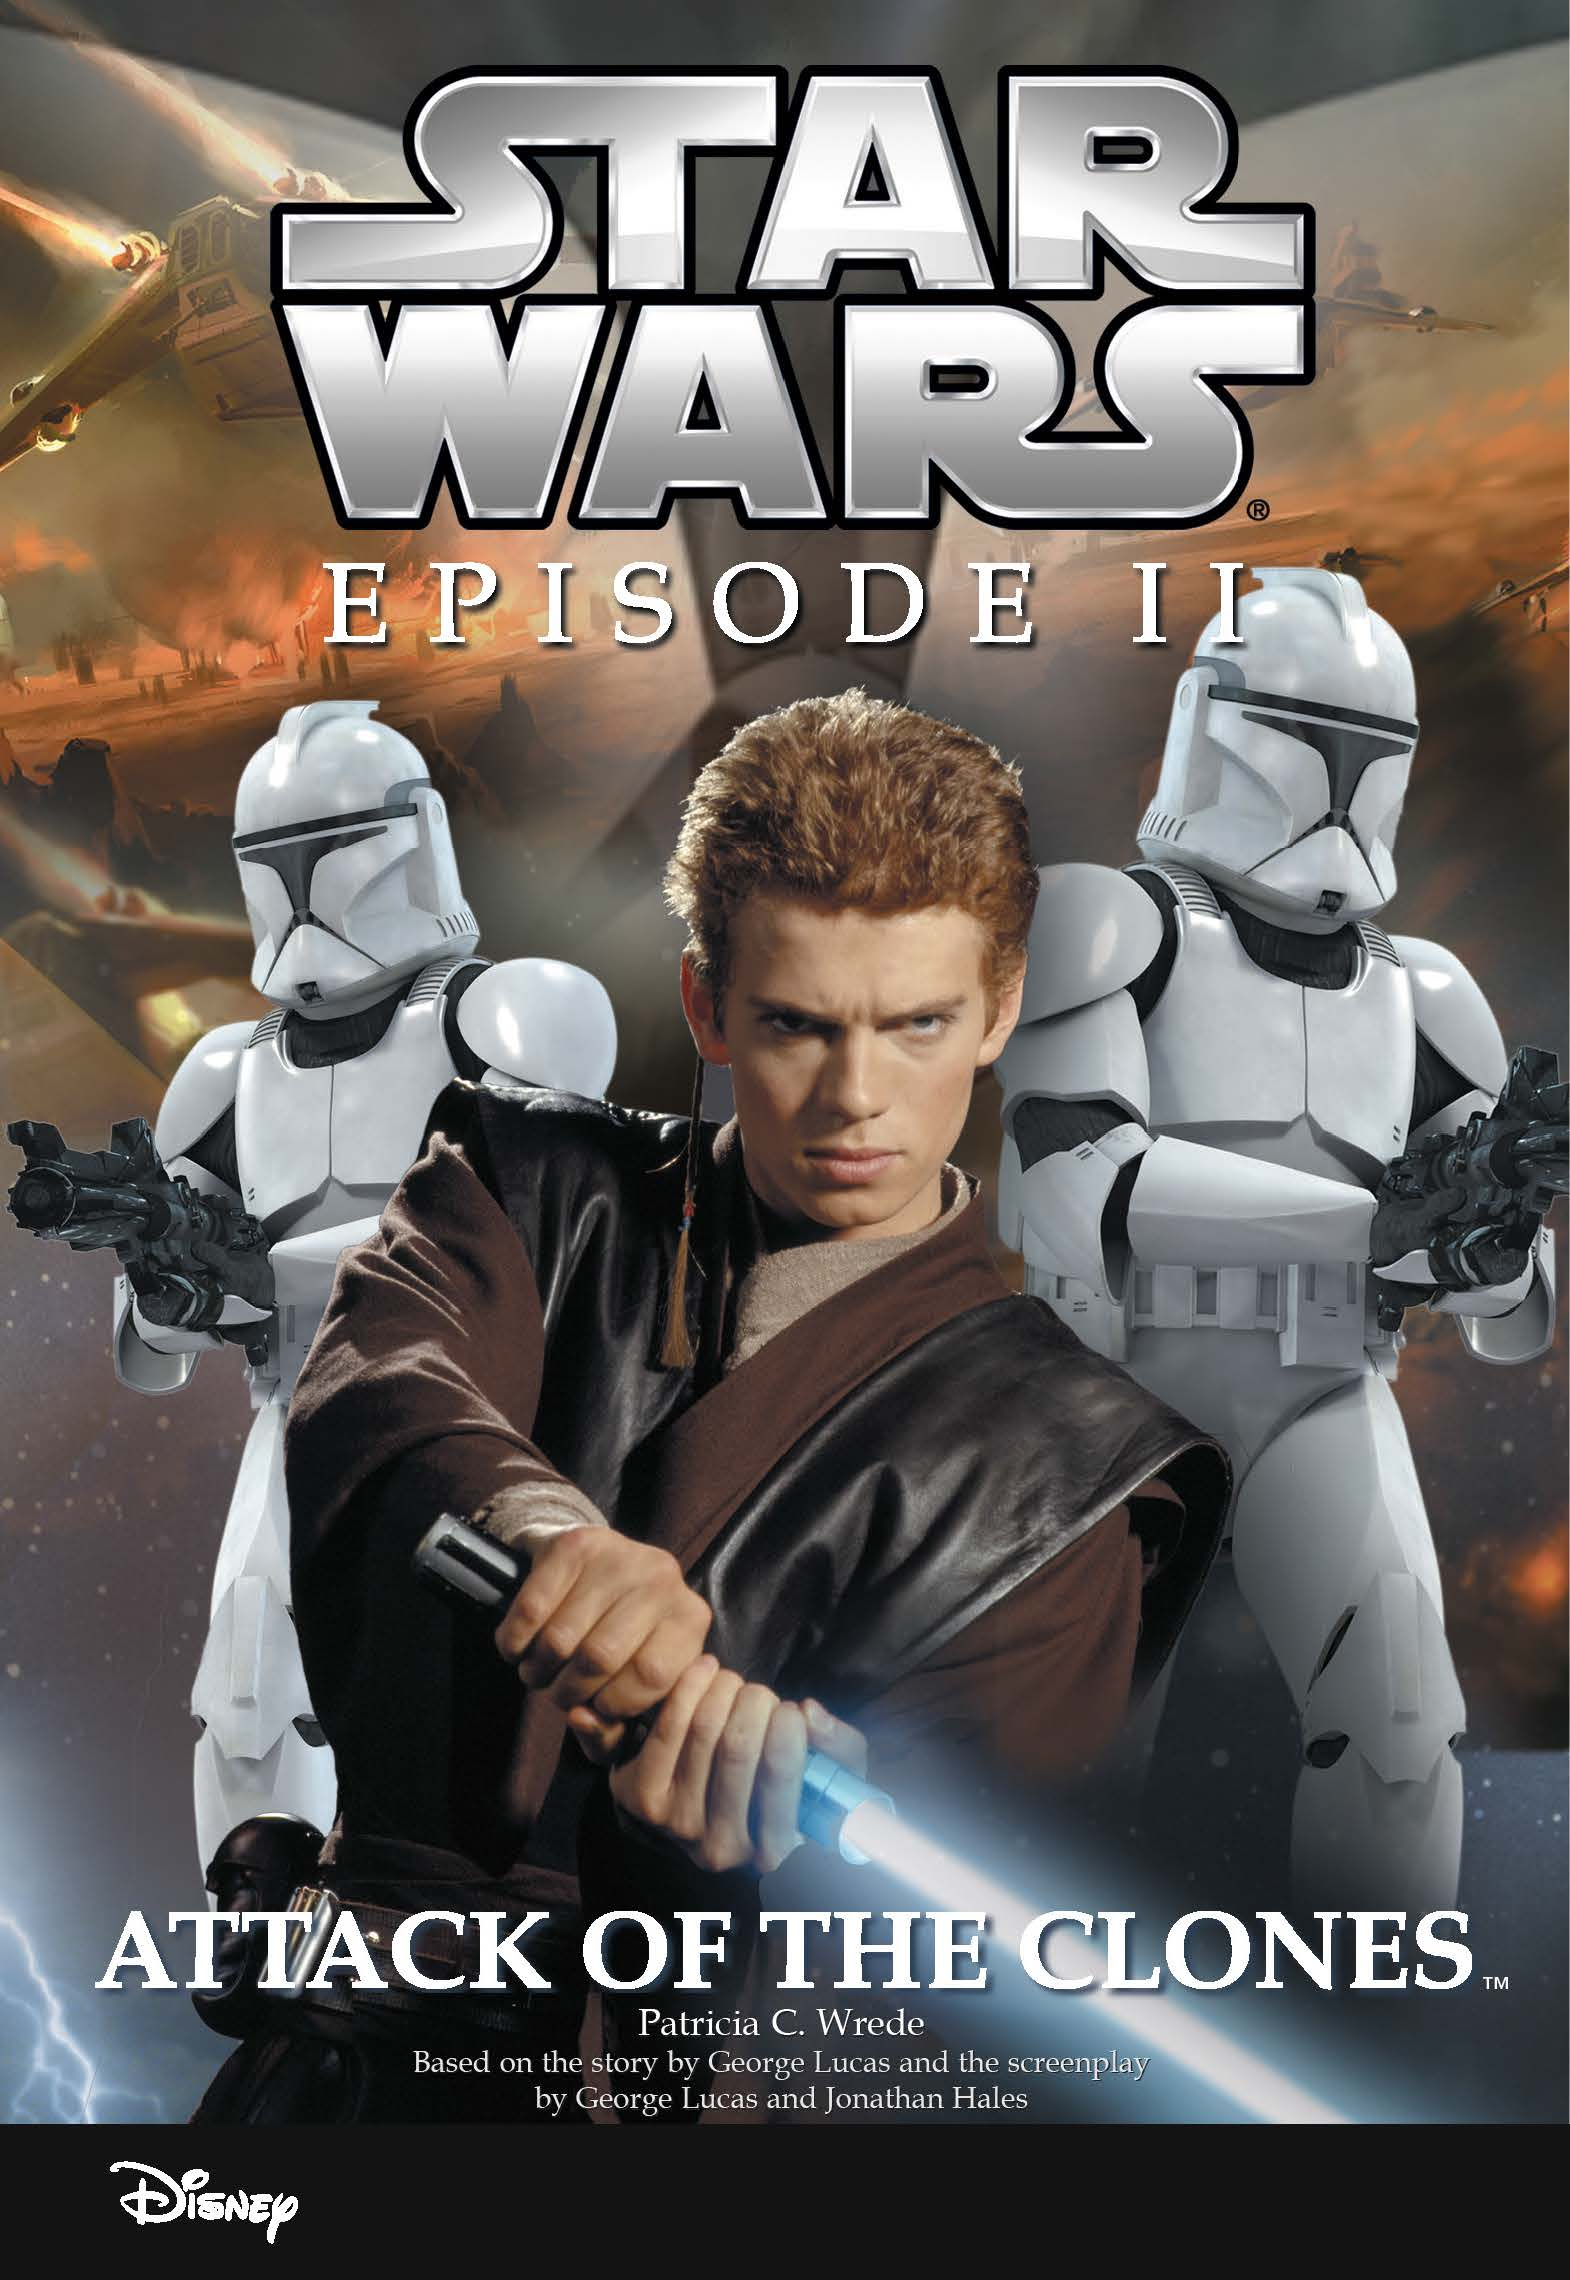 Star Wars Episode II:  Attack of the Clones (Volume 2)